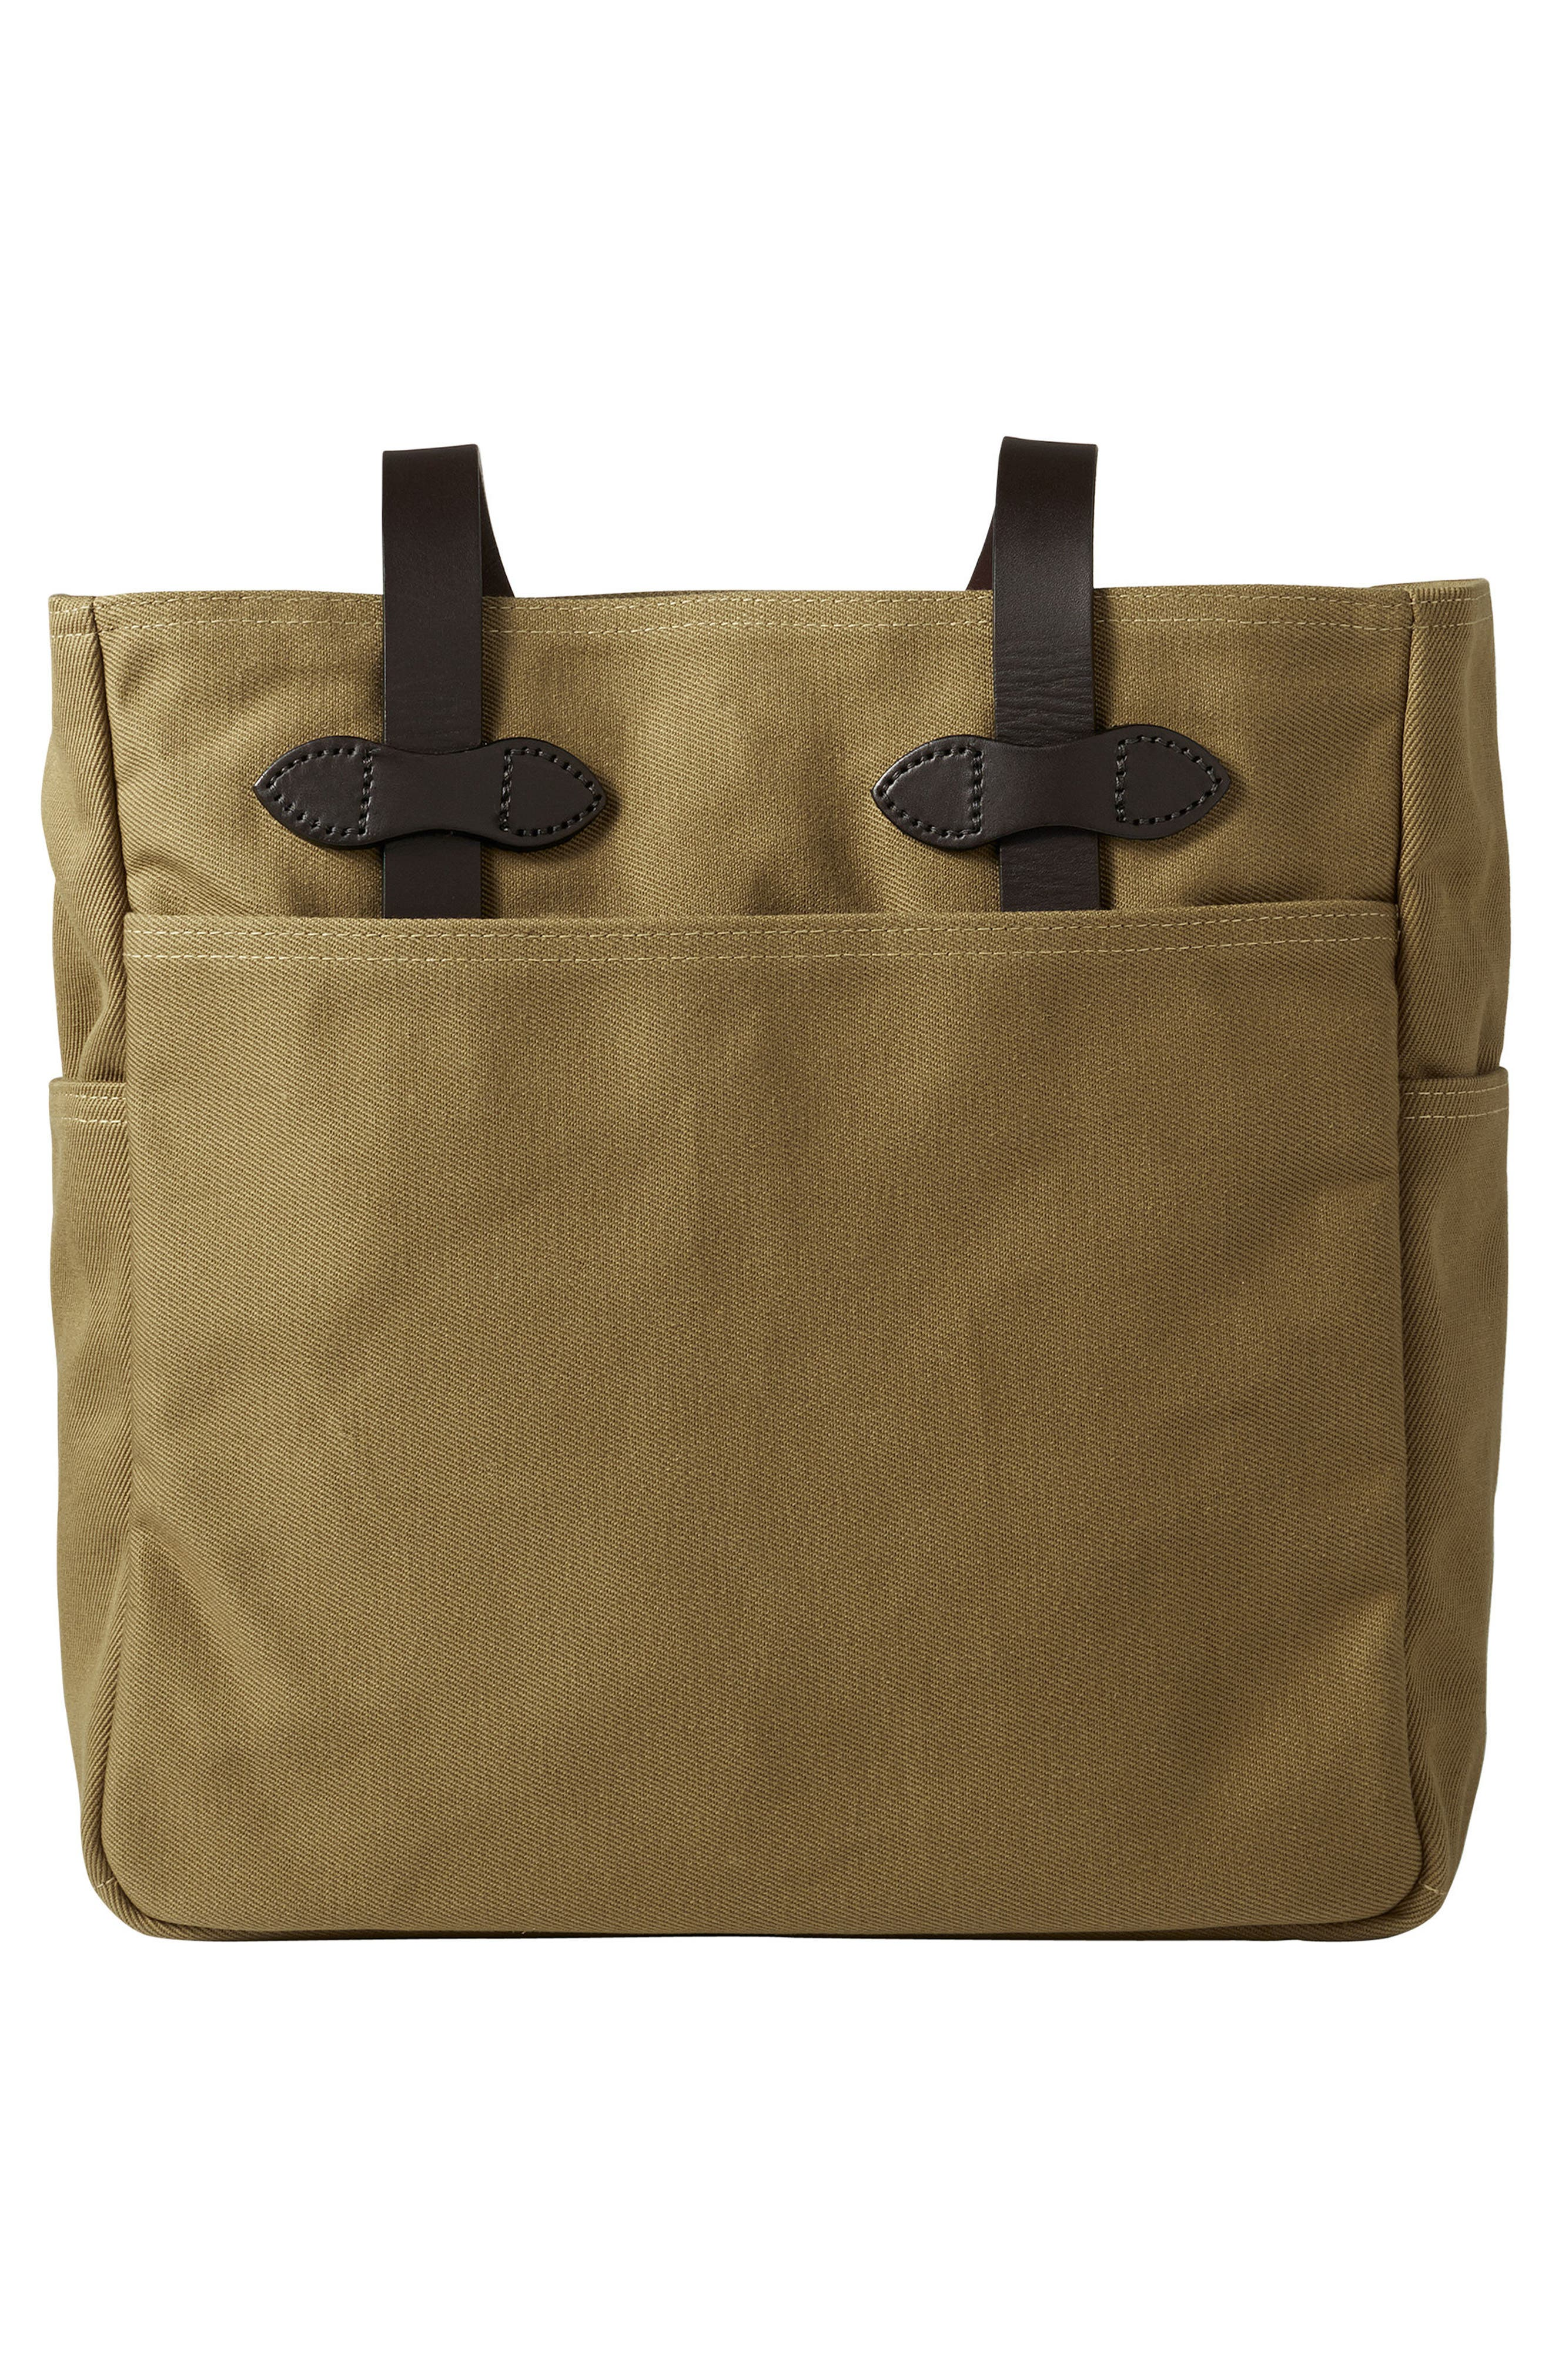 Rugged Twill Tote Bag,                             Alternate thumbnail 2, color,                             Tan